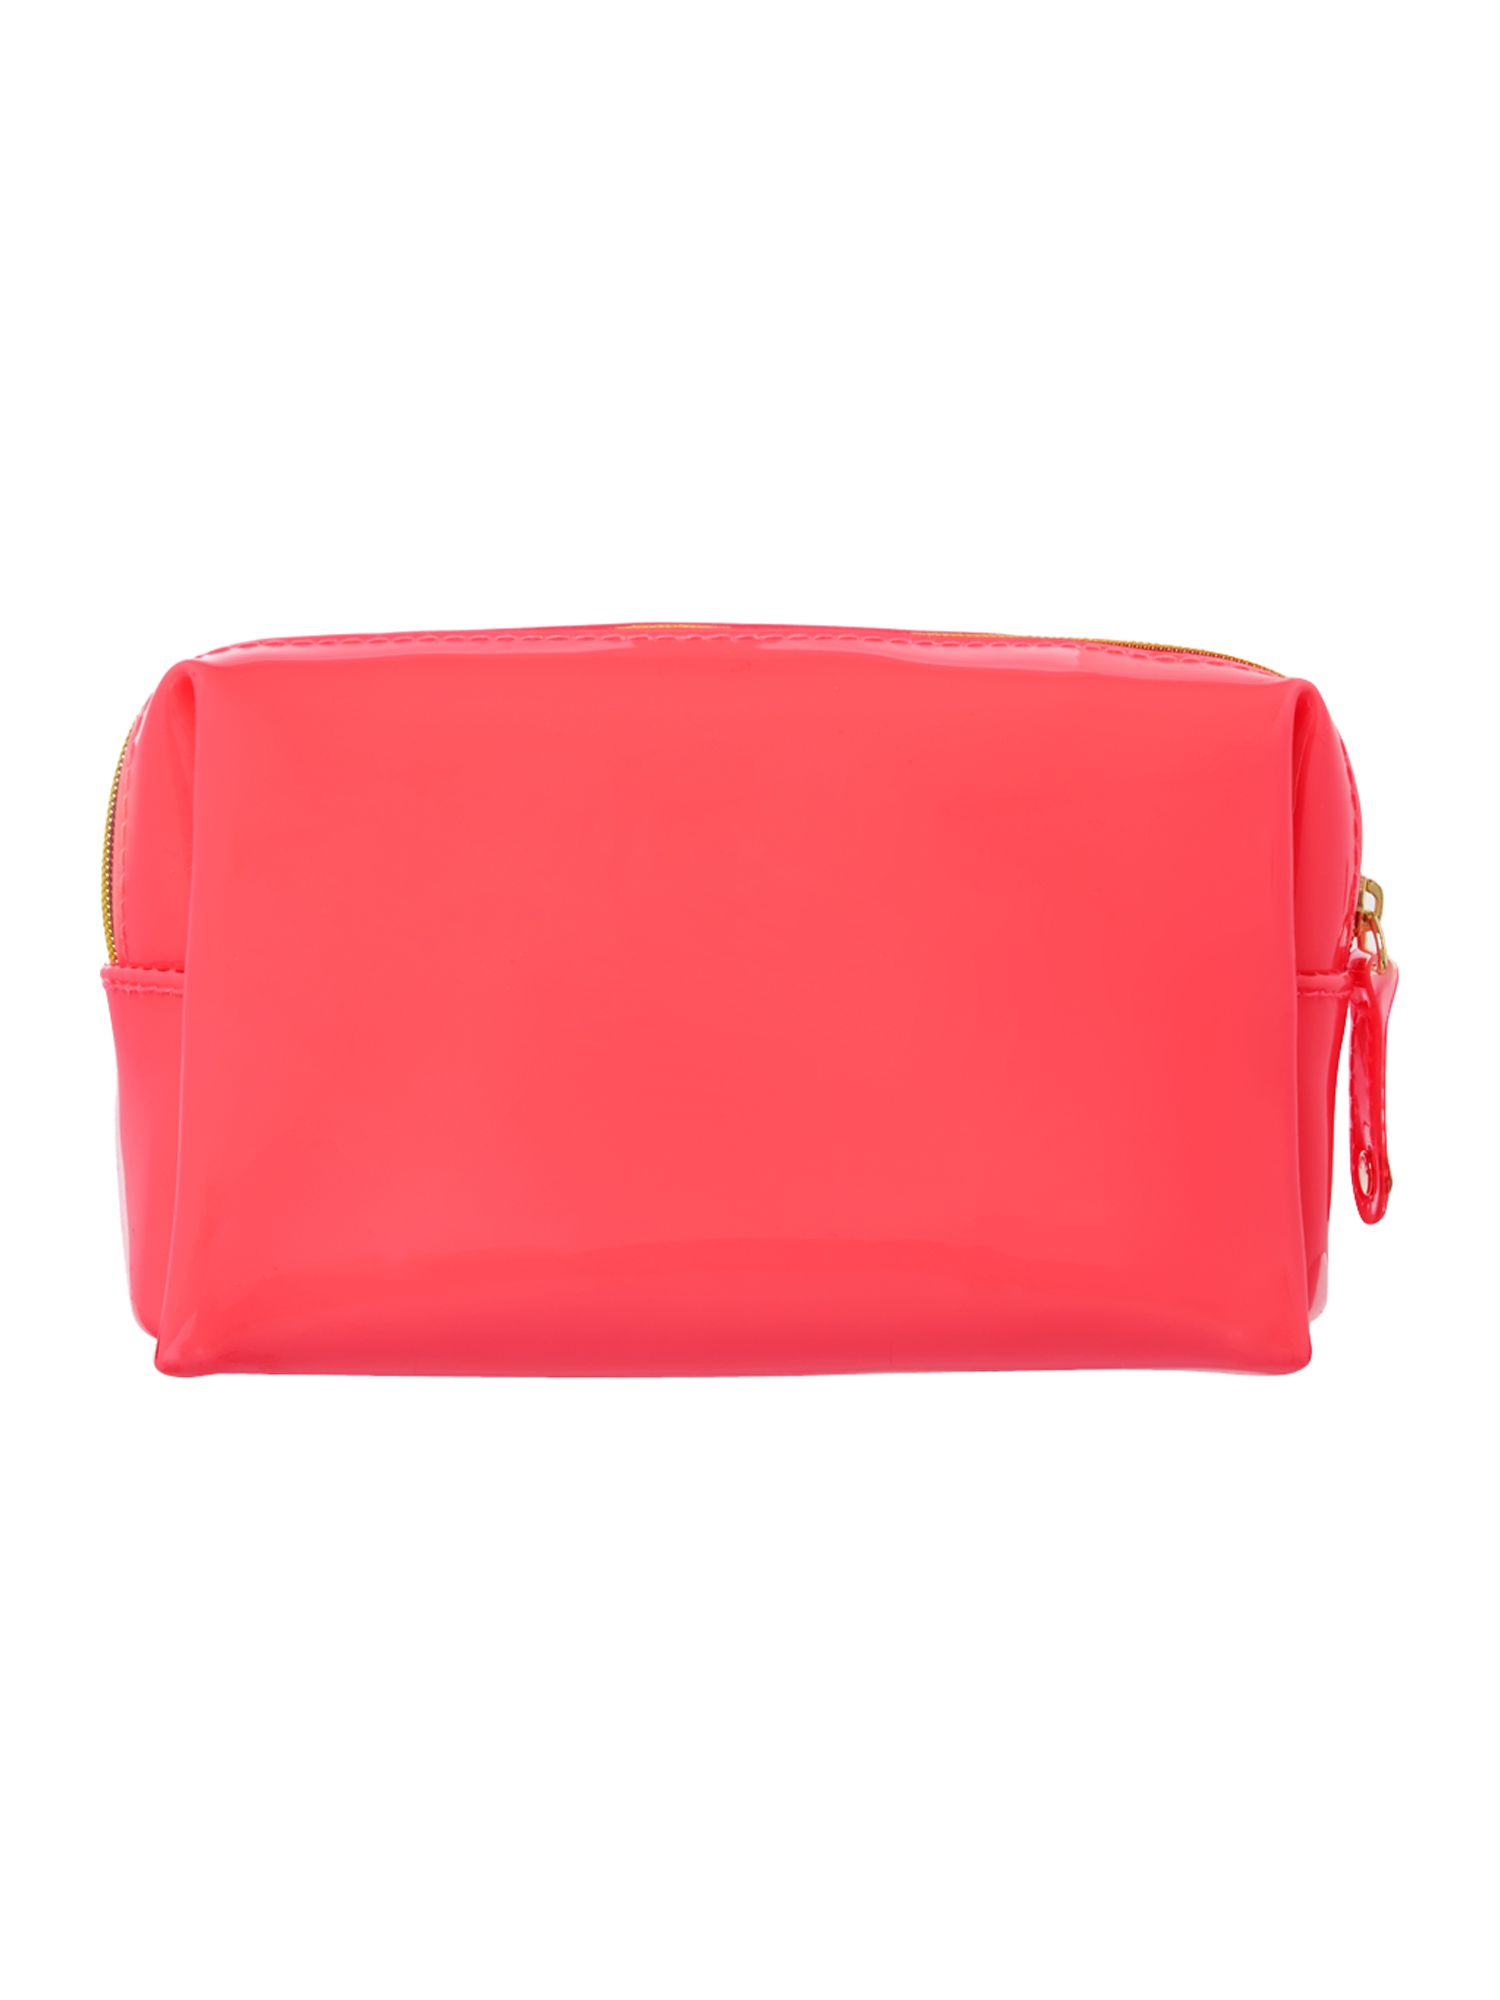 Small pink cosmetics bag